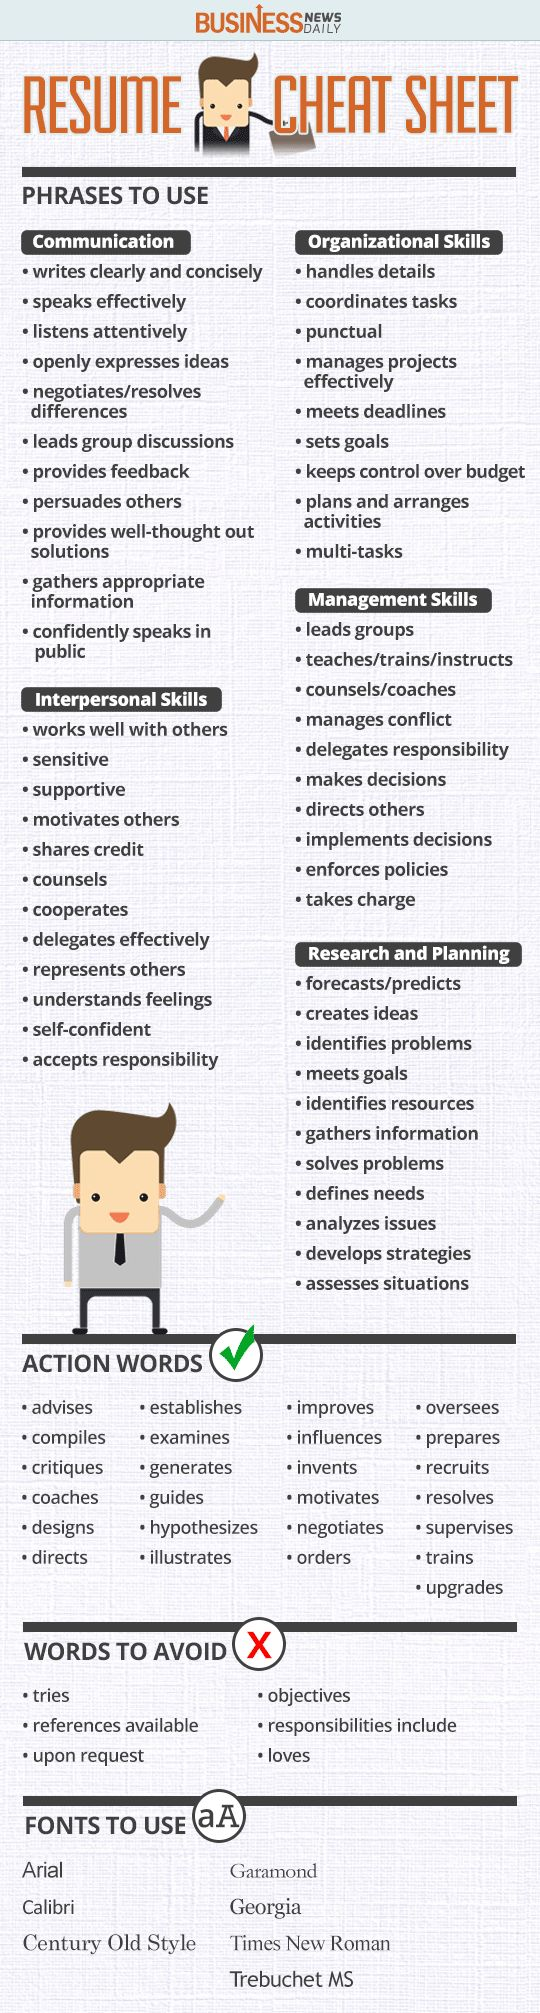 Opposenewapstandardsus  Prepossessing  Ideas About Resume On Pinterest  Cv Format Resume Cv And  With Remarkable Resume Cheat Sheet Infographic Andrews Almost Done With A Complete Unit On Employment Which With Nice How To Make A Good Resume Also Retail Resume In Addition Marketing Resume And Best Resume Font As Well As Student Resume Additionally Skills To List On Resume From Pinterestcom With Opposenewapstandardsus  Remarkable  Ideas About Resume On Pinterest  Cv Format Resume Cv And  With Nice Resume Cheat Sheet Infographic Andrews Almost Done With A Complete Unit On Employment Which And Prepossessing How To Make A Good Resume Also Retail Resume In Addition Marketing Resume From Pinterestcom